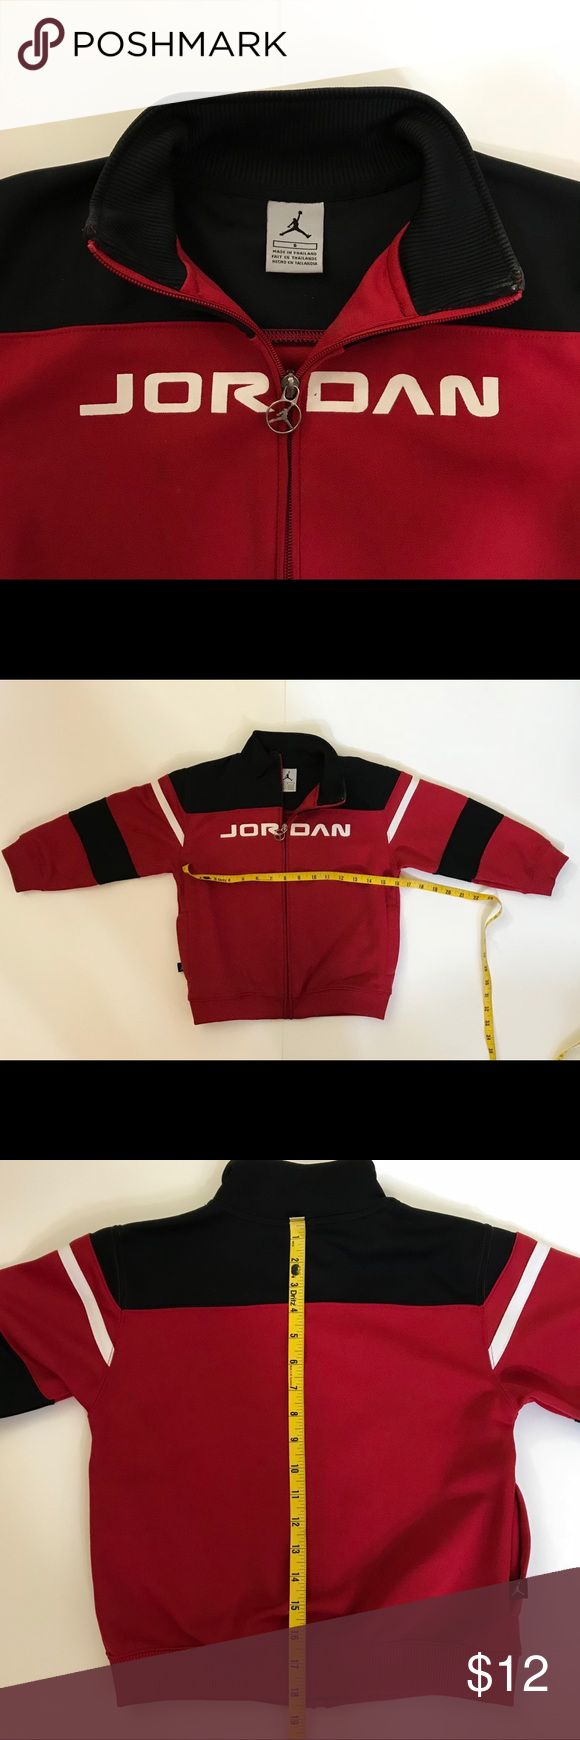 """Boys Red, Black, and White Air Jordan Jacket Sz 6 Excellent condition. Used once then stay in the closet. Dimensions: chest about 32"""" all around, length 18.5"""" Air Jordan Jackets & Coats"""